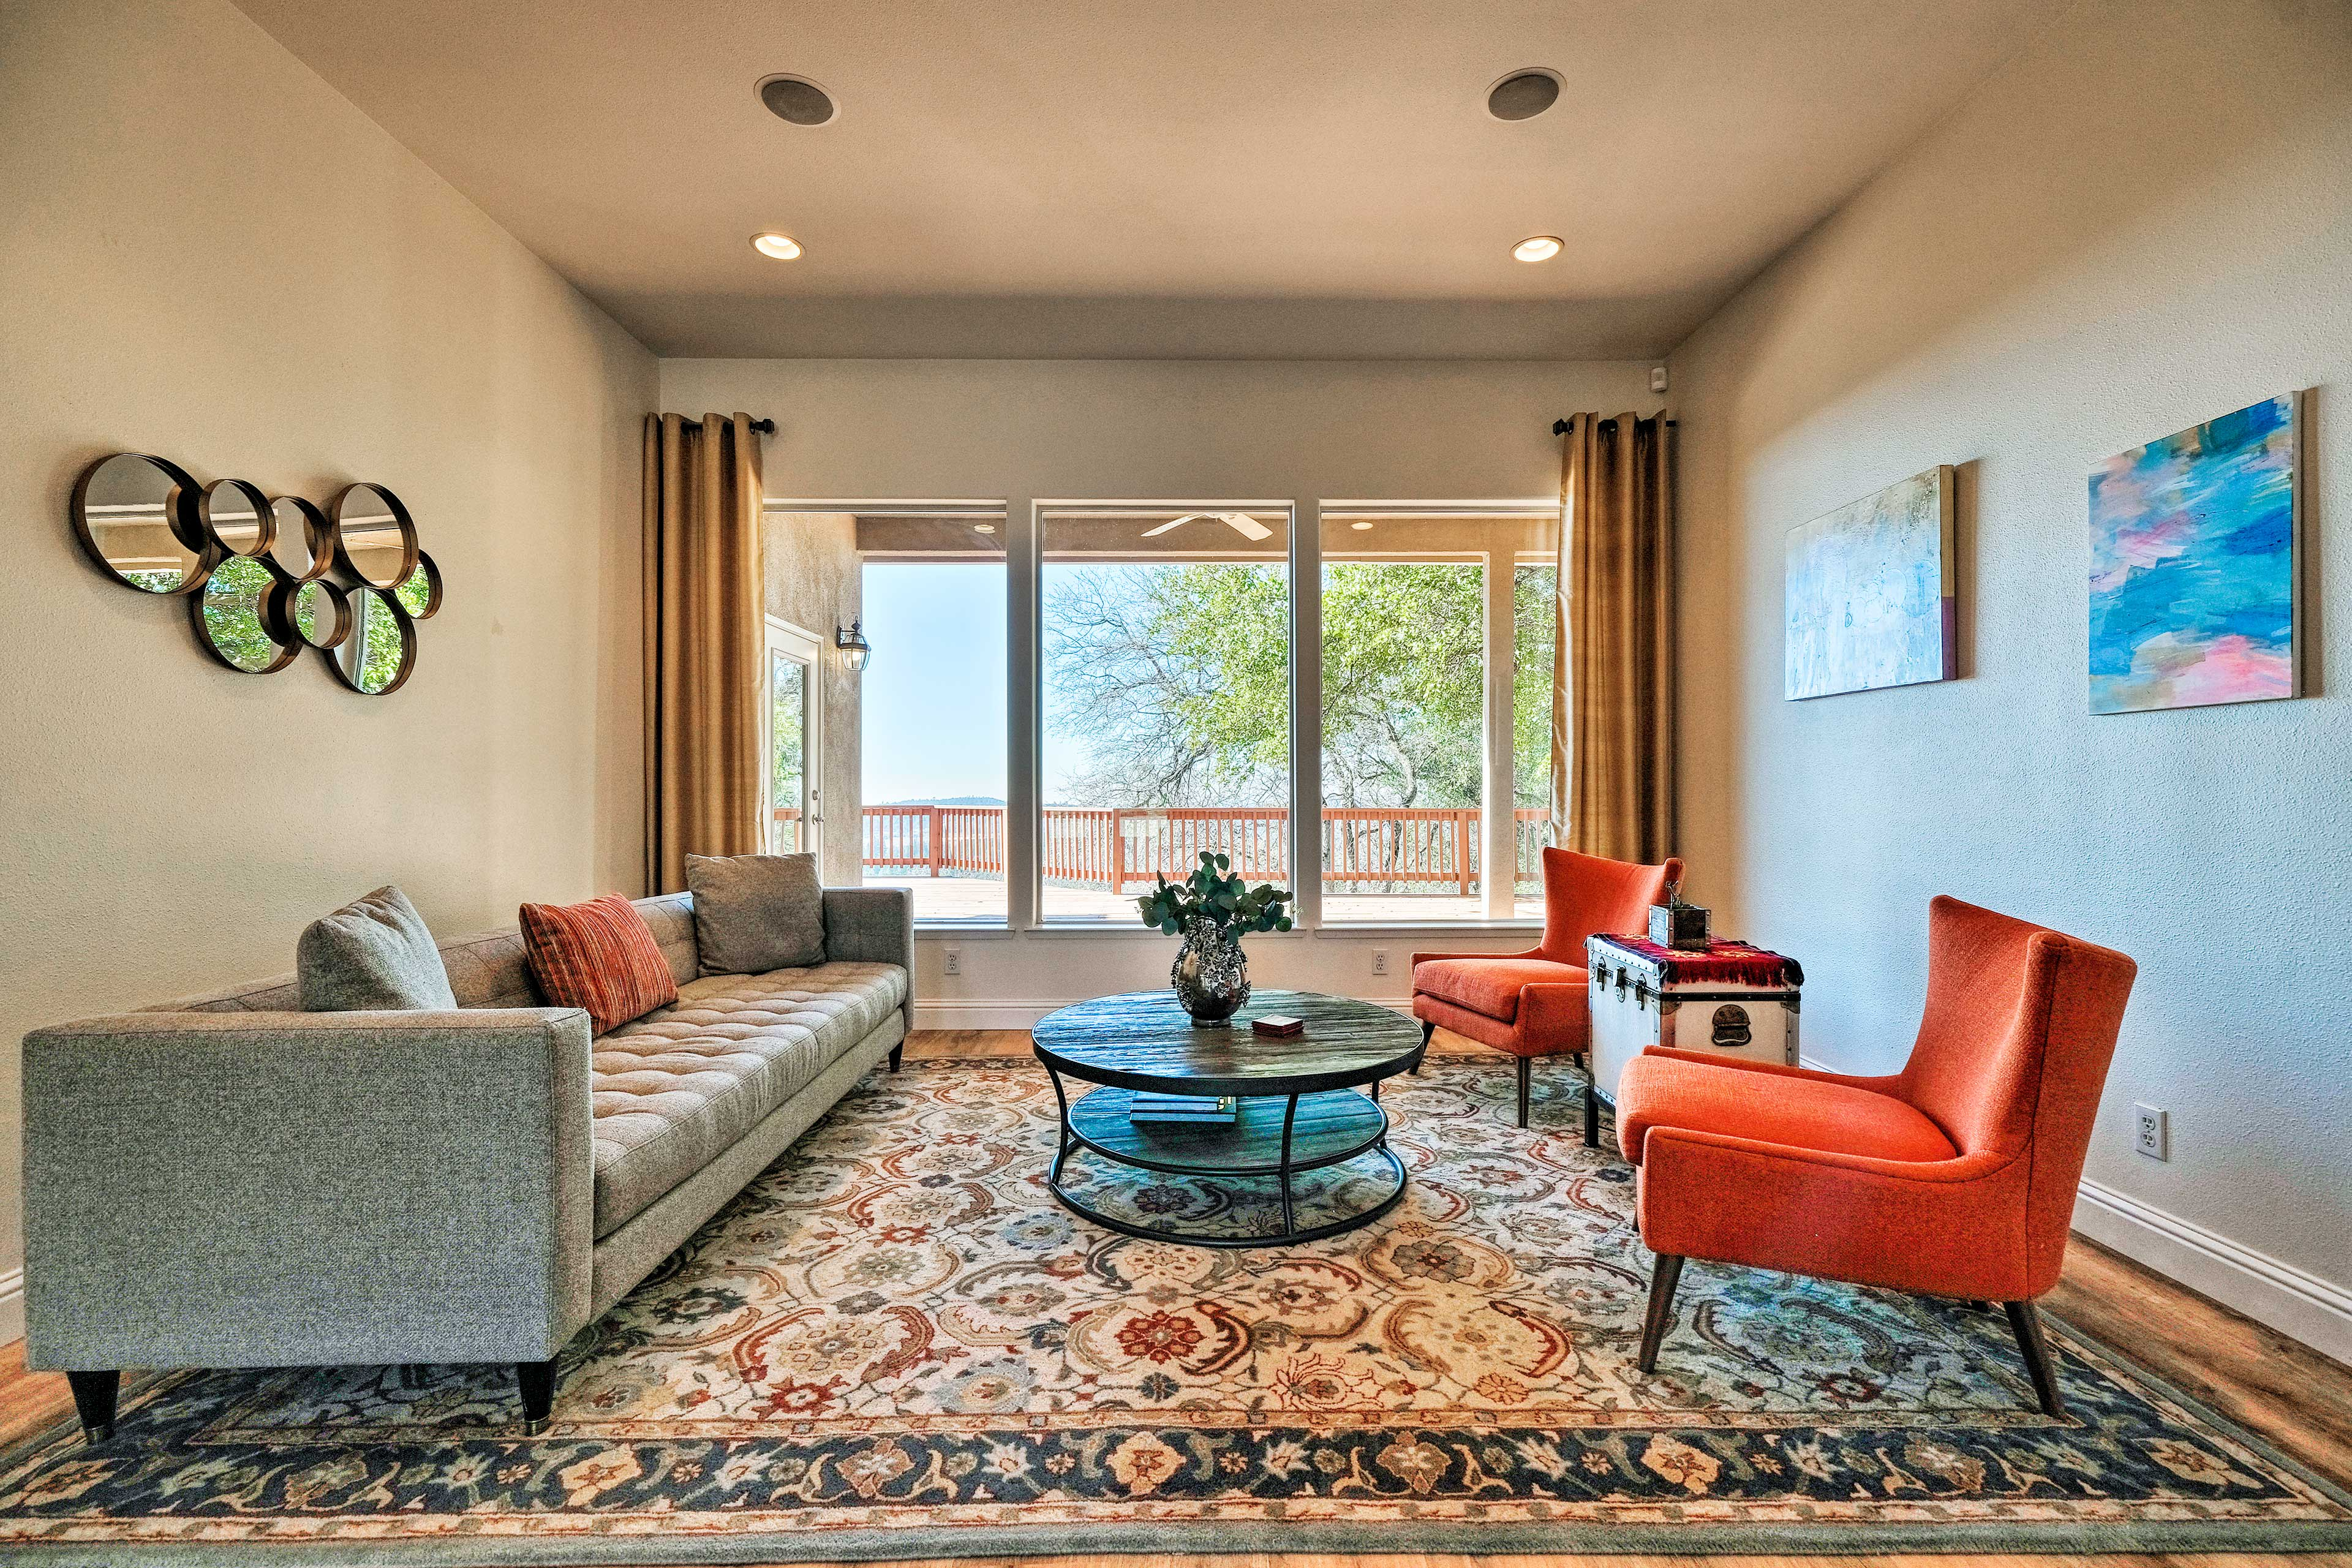 The stylish vacation rental is complete with all the comforts of home.